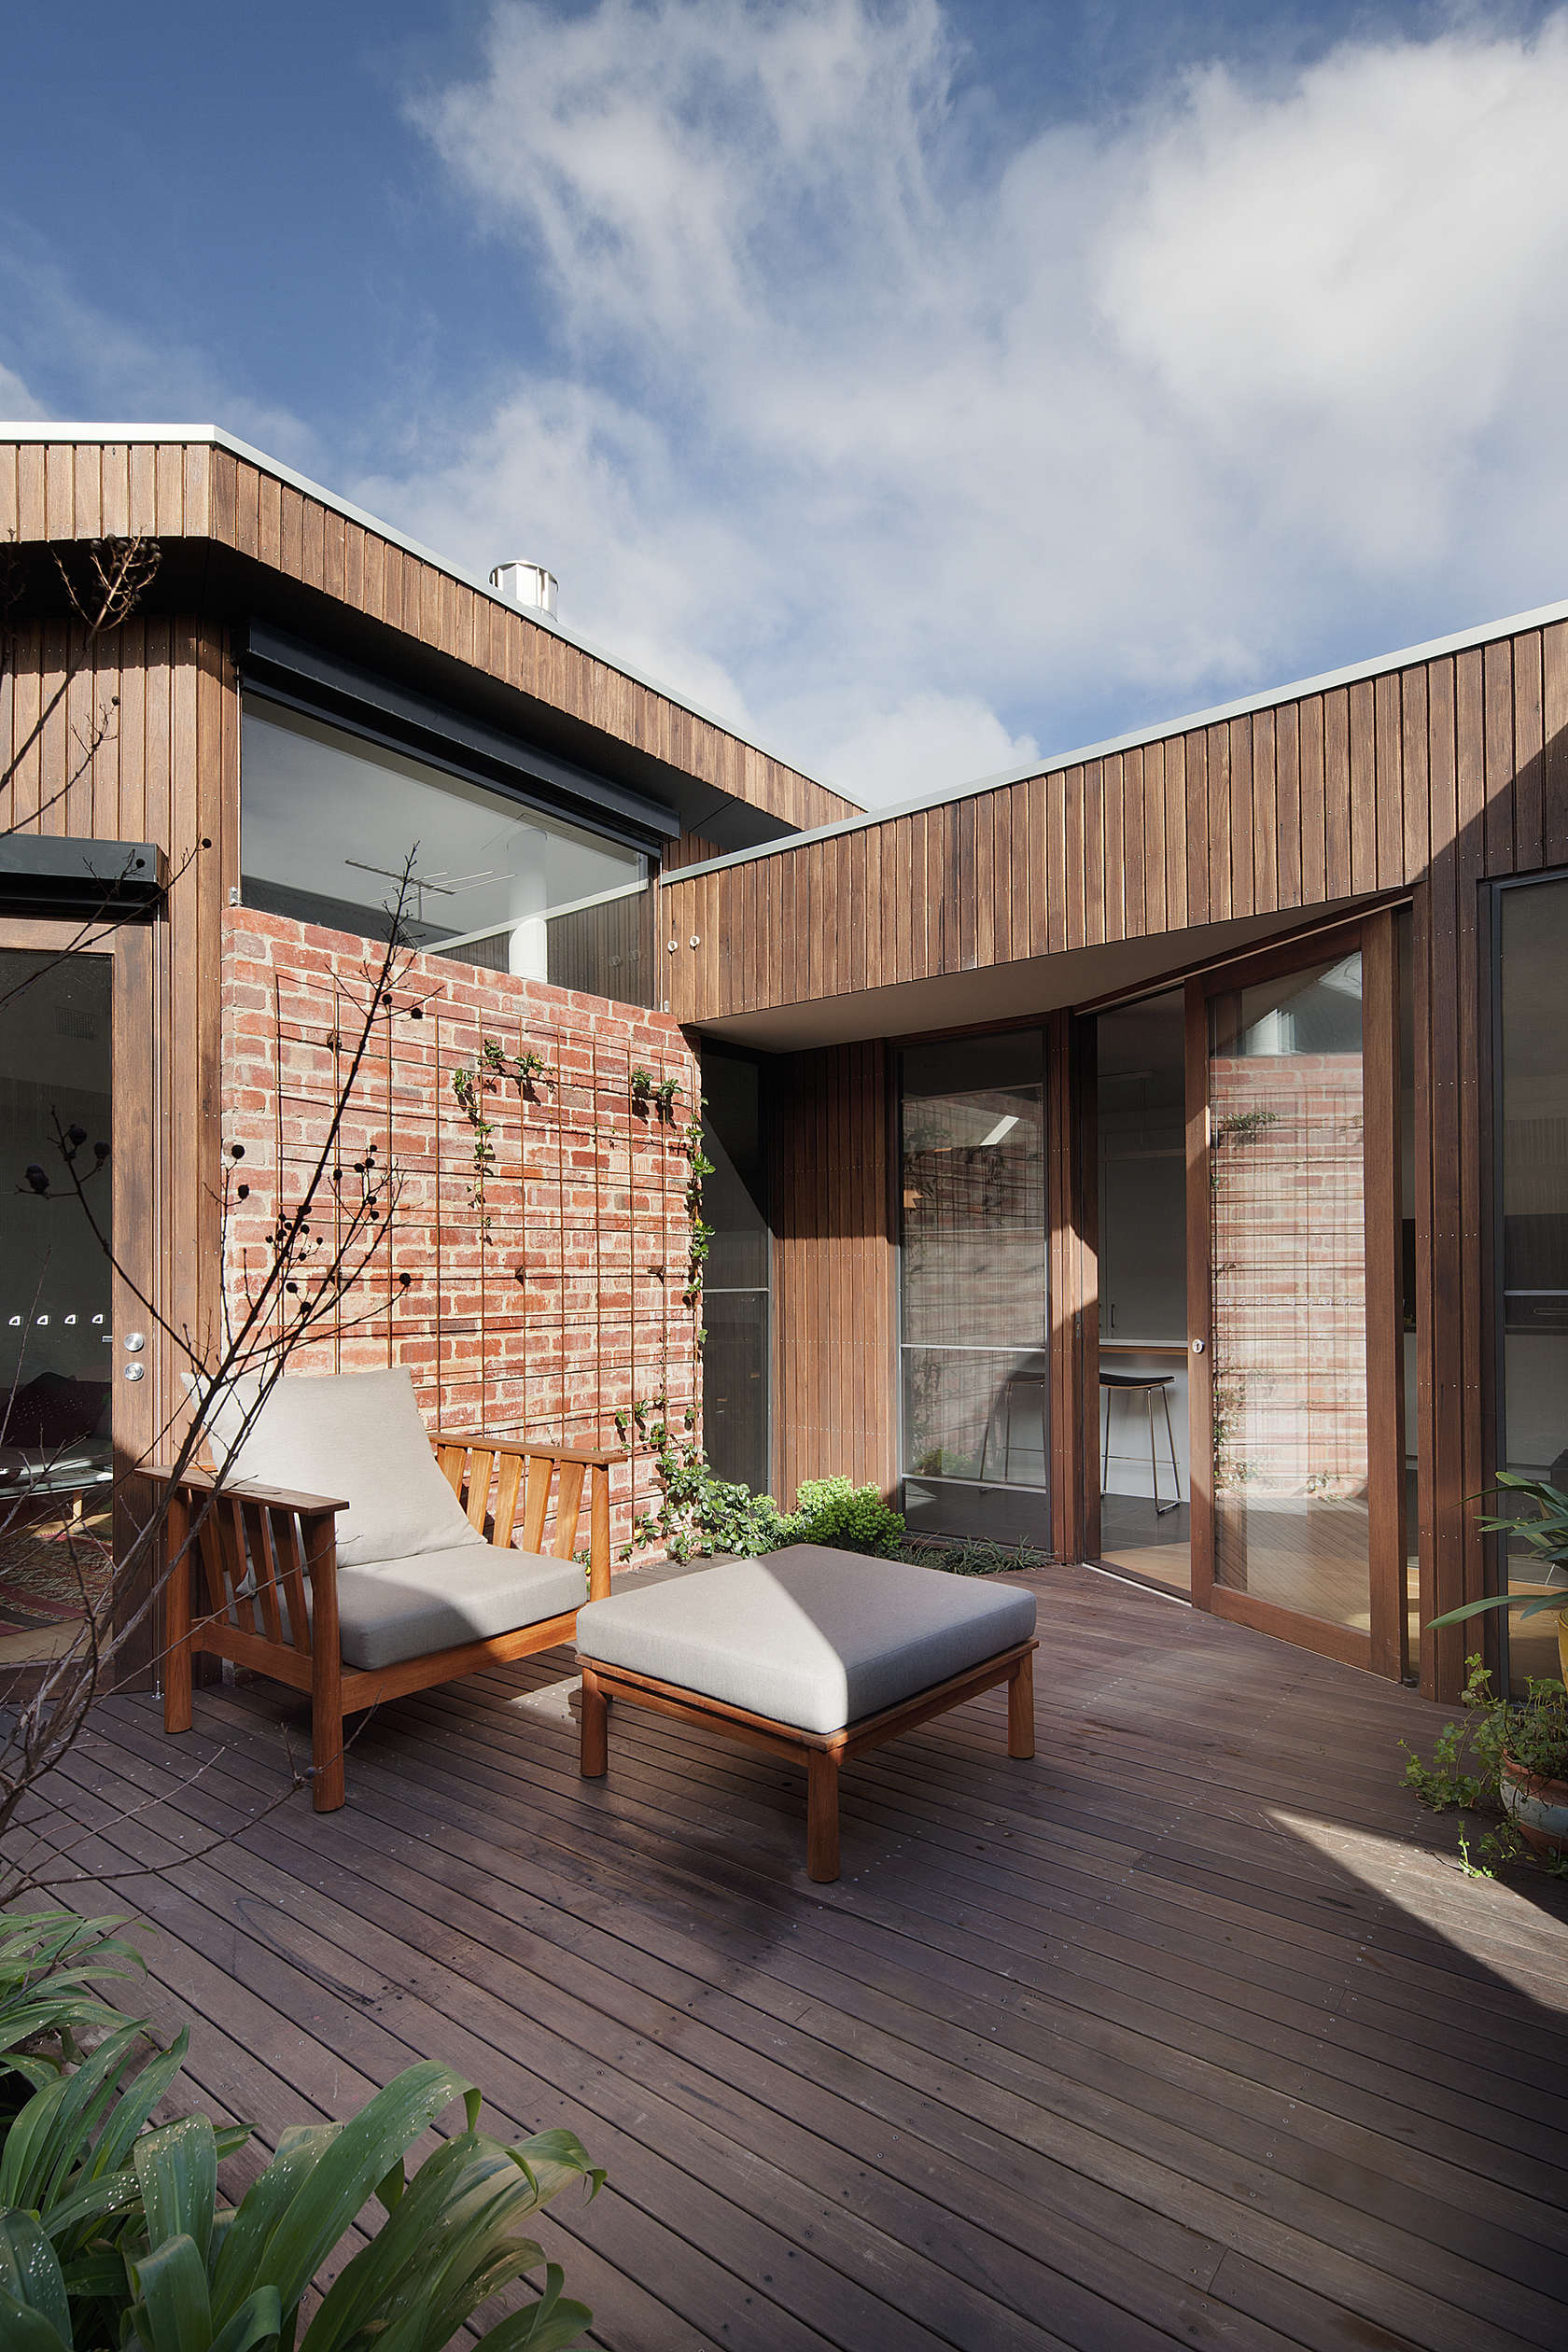 Inner City Downsize House by Steffen Welsch Architects (via Lunchbox Architect)